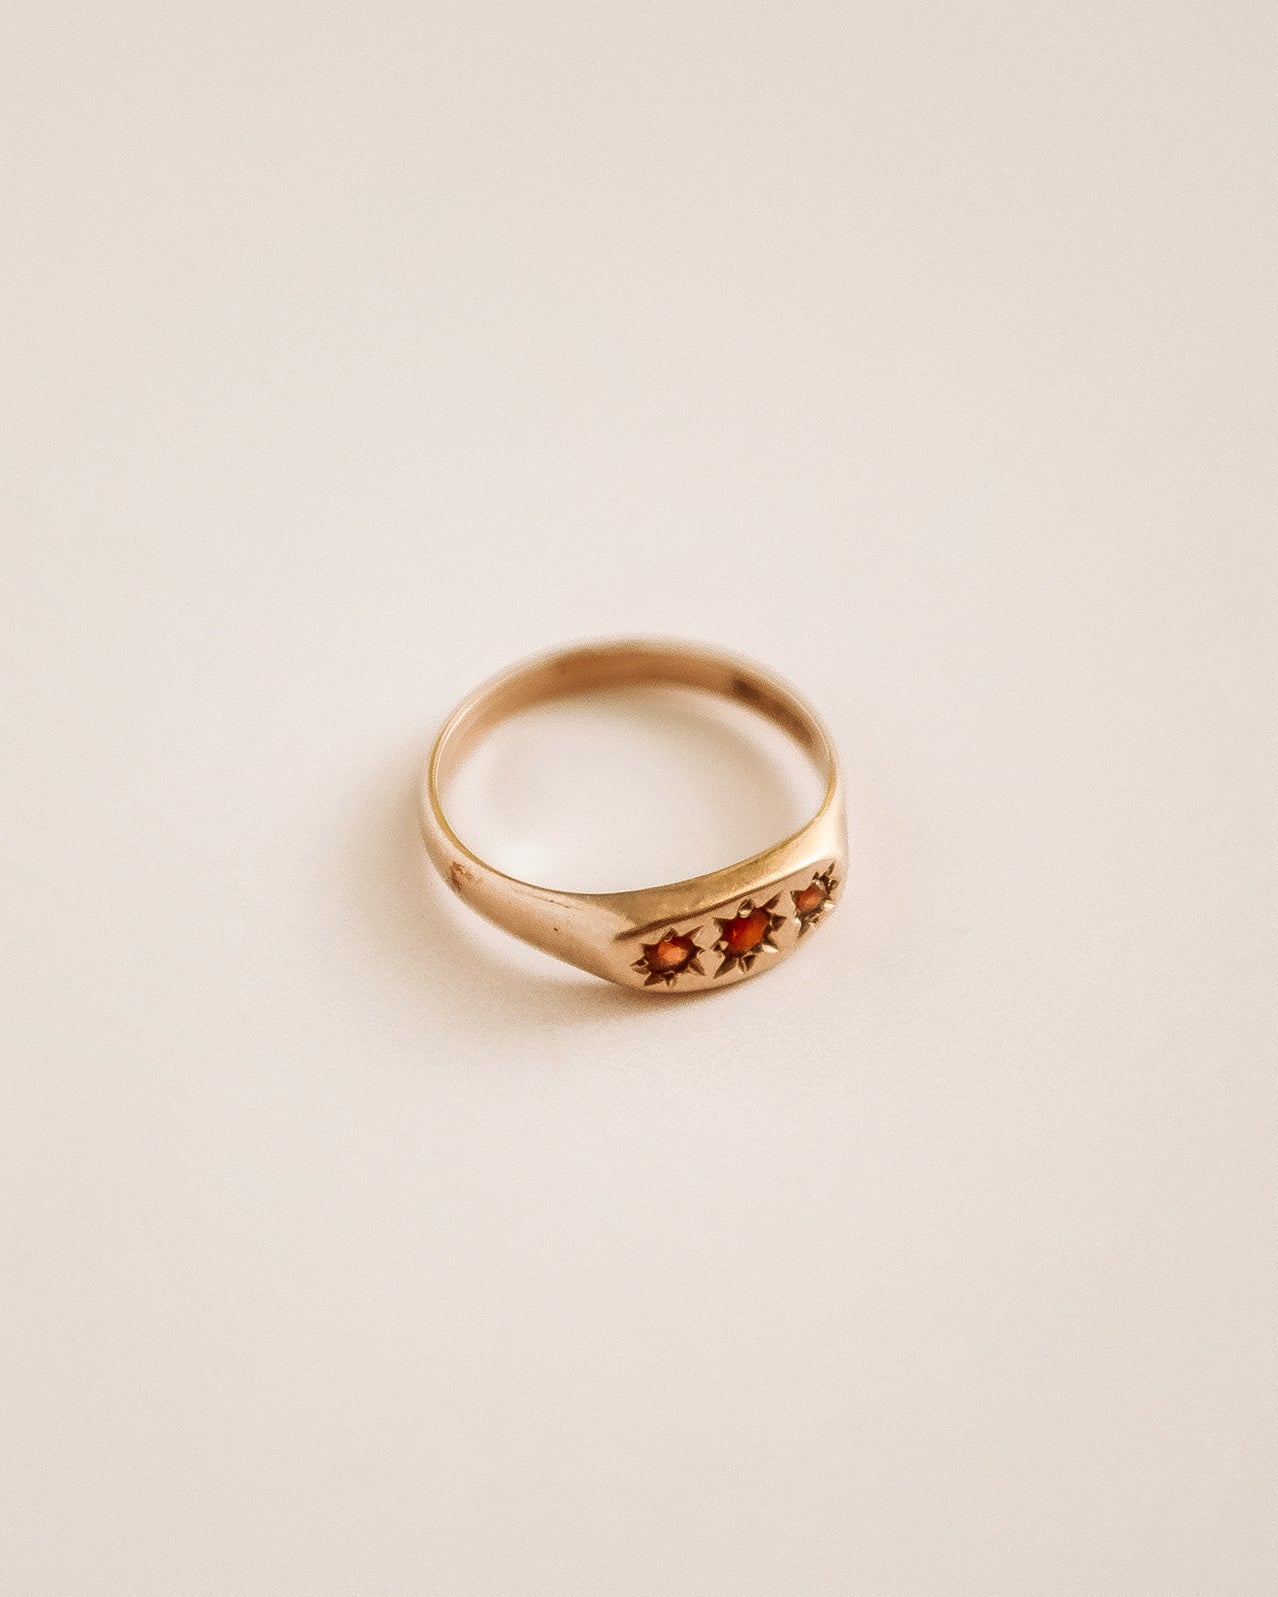 Lottie 9ct Gold Garnet Signet Ring